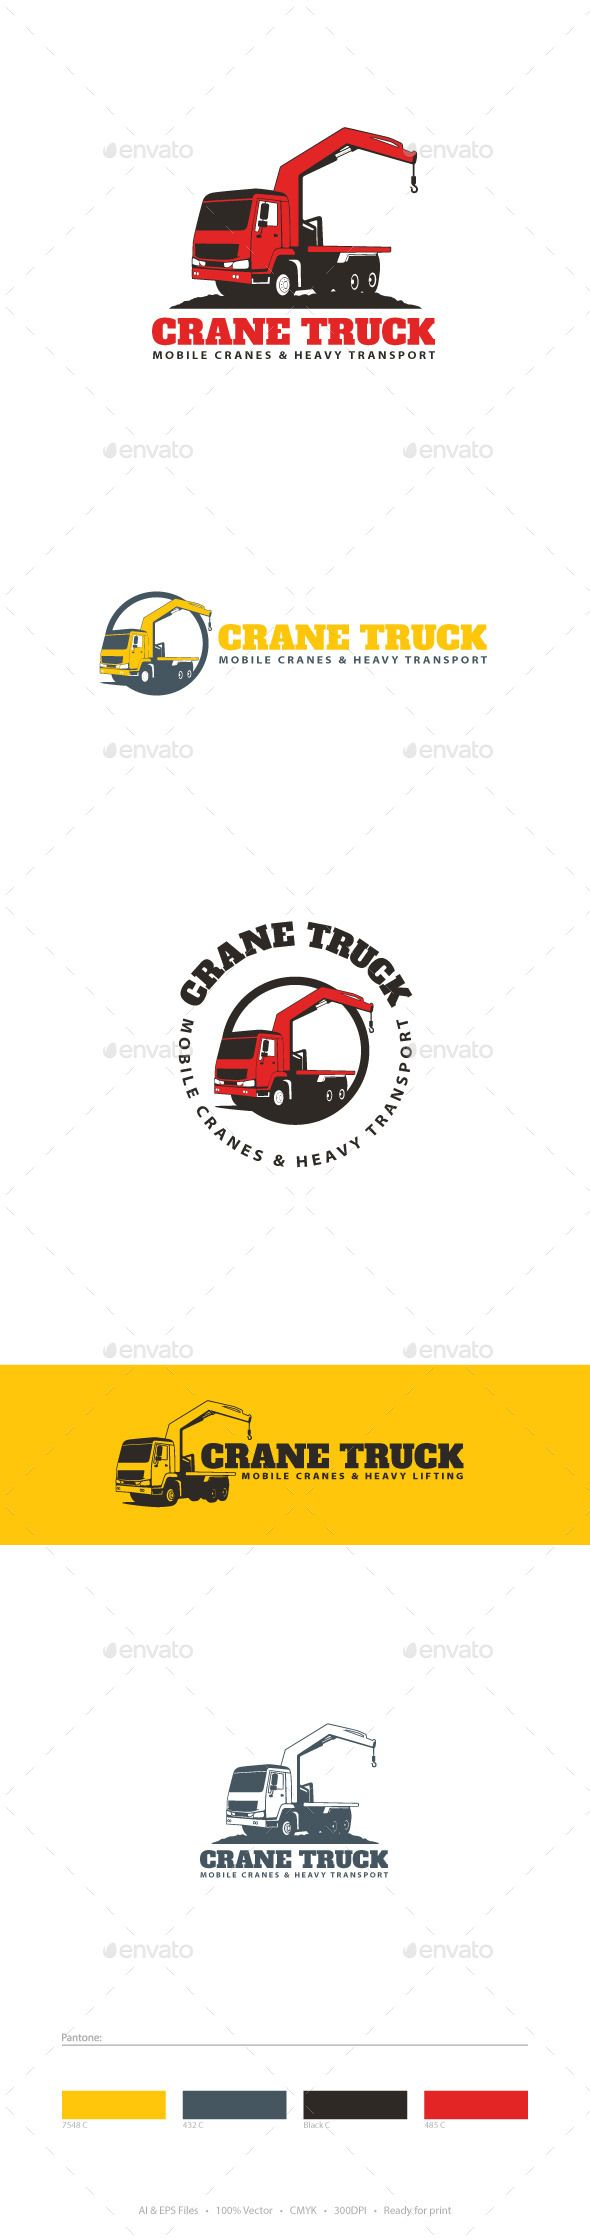 Crane Truck Logo Template | Logo templates, Logos and Template